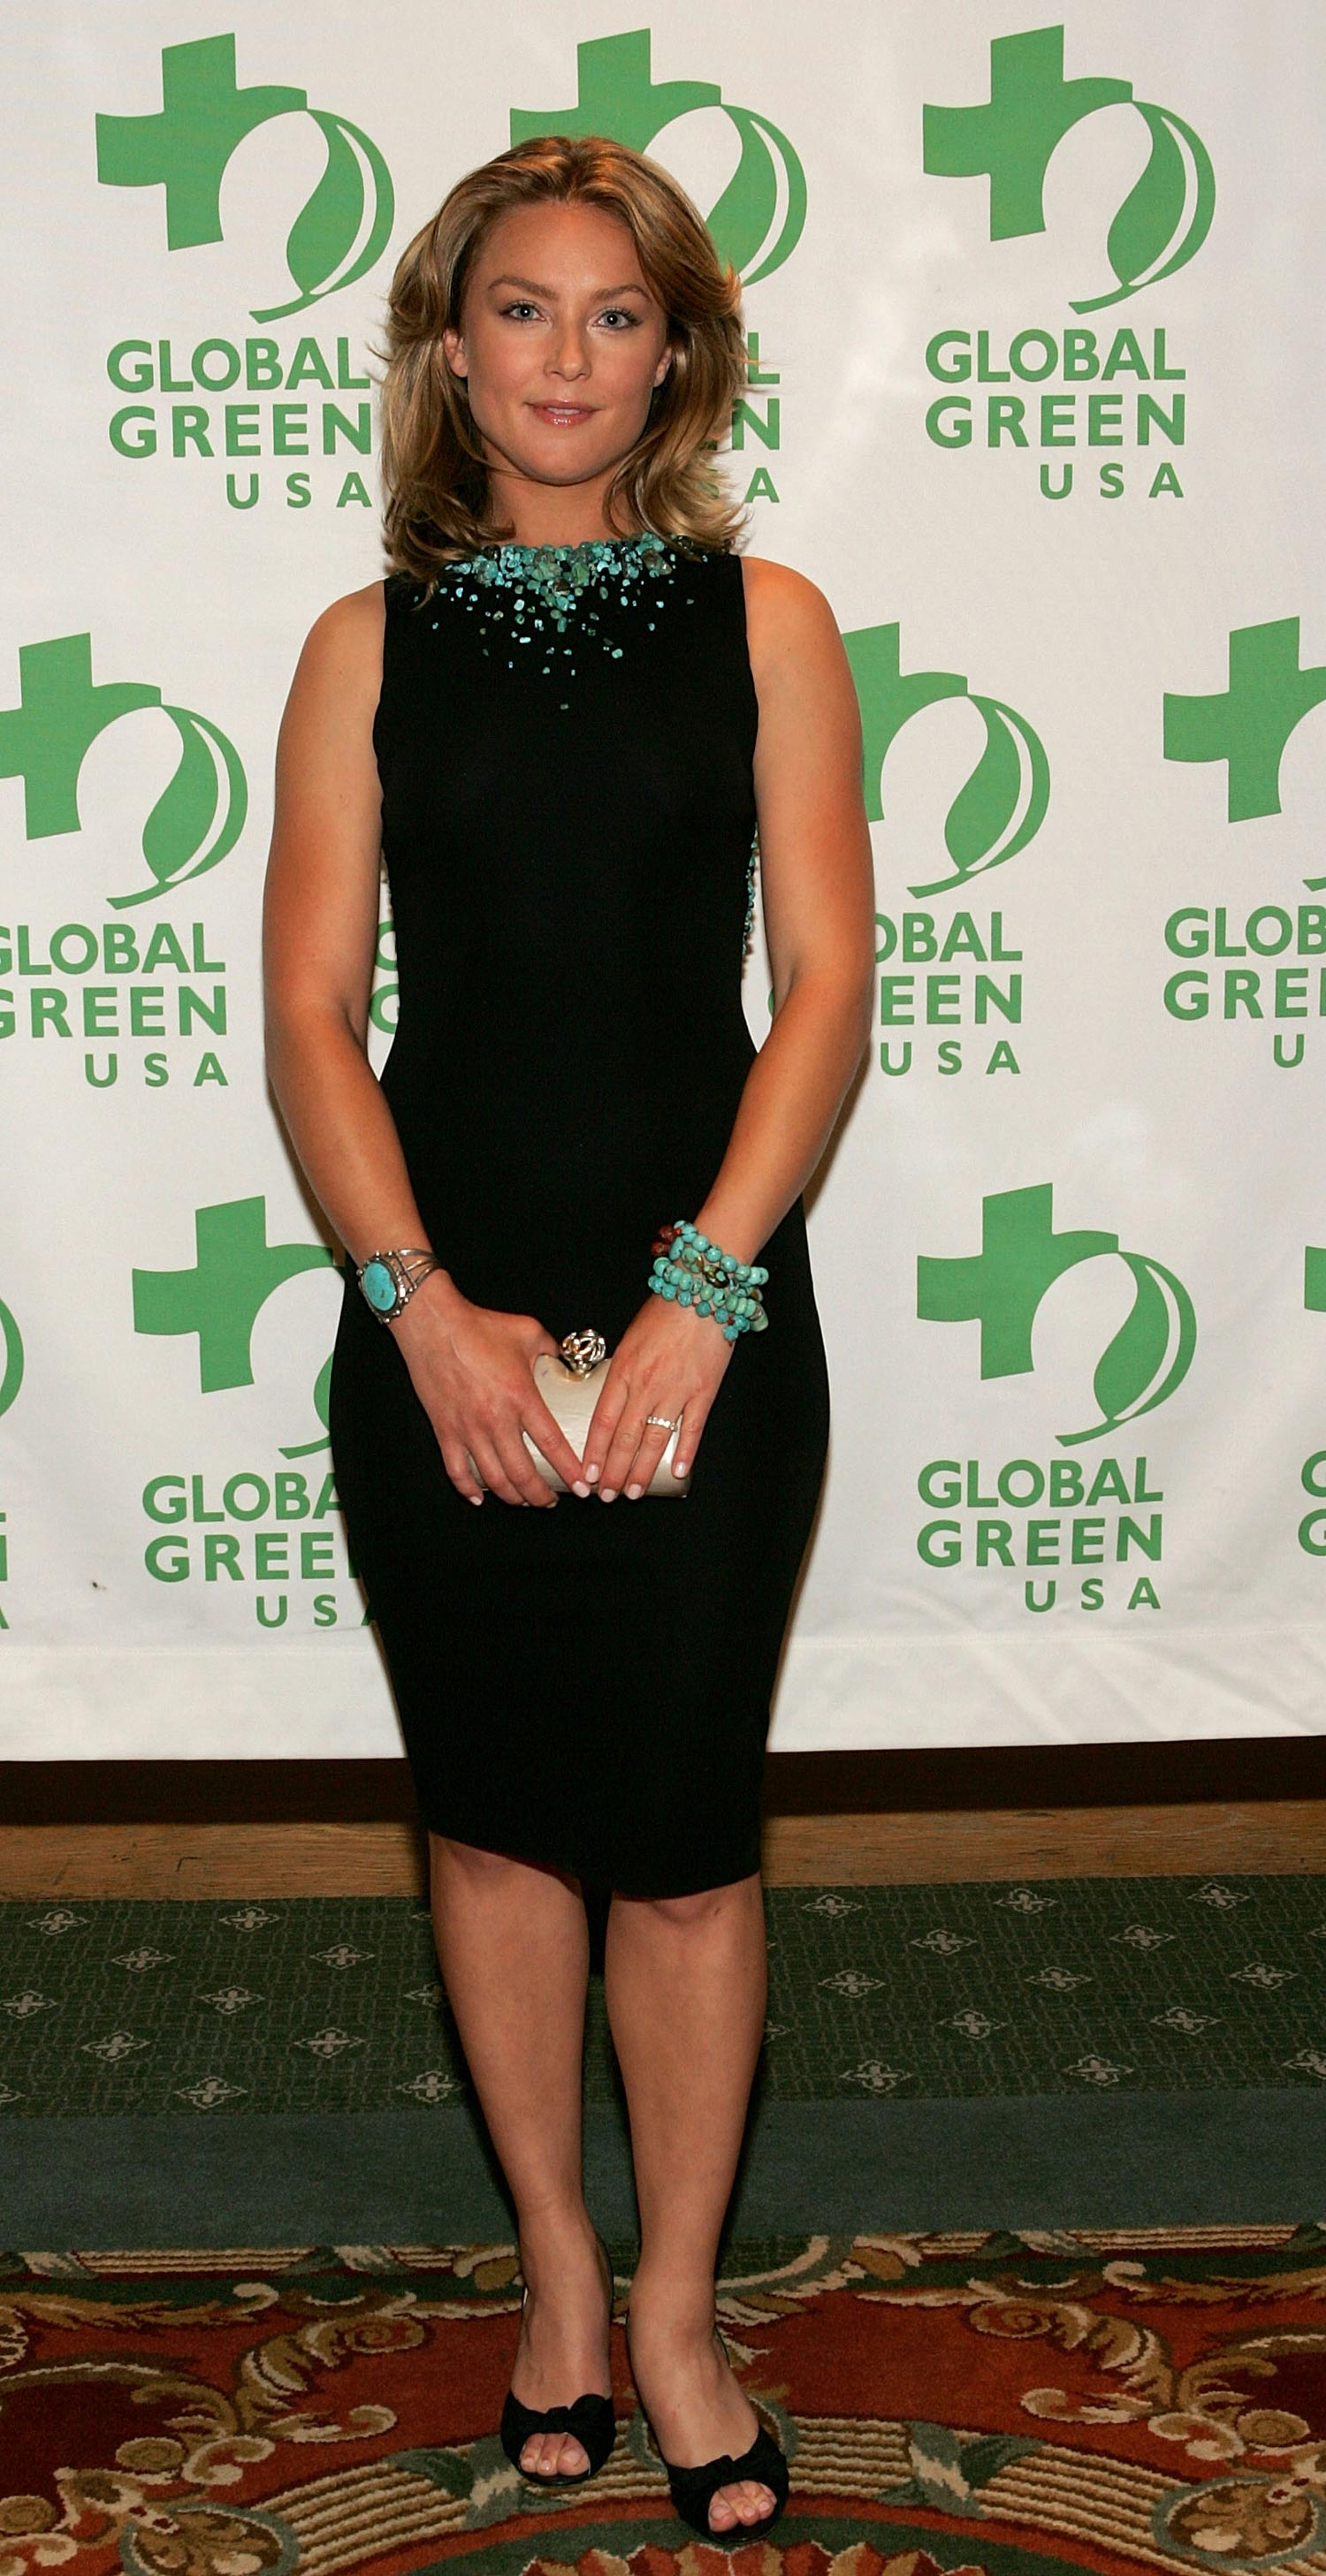 IMG/jpg/elisabeth-rohm-2007-green-cross-millenium-awards-hq-02-1500.jpg